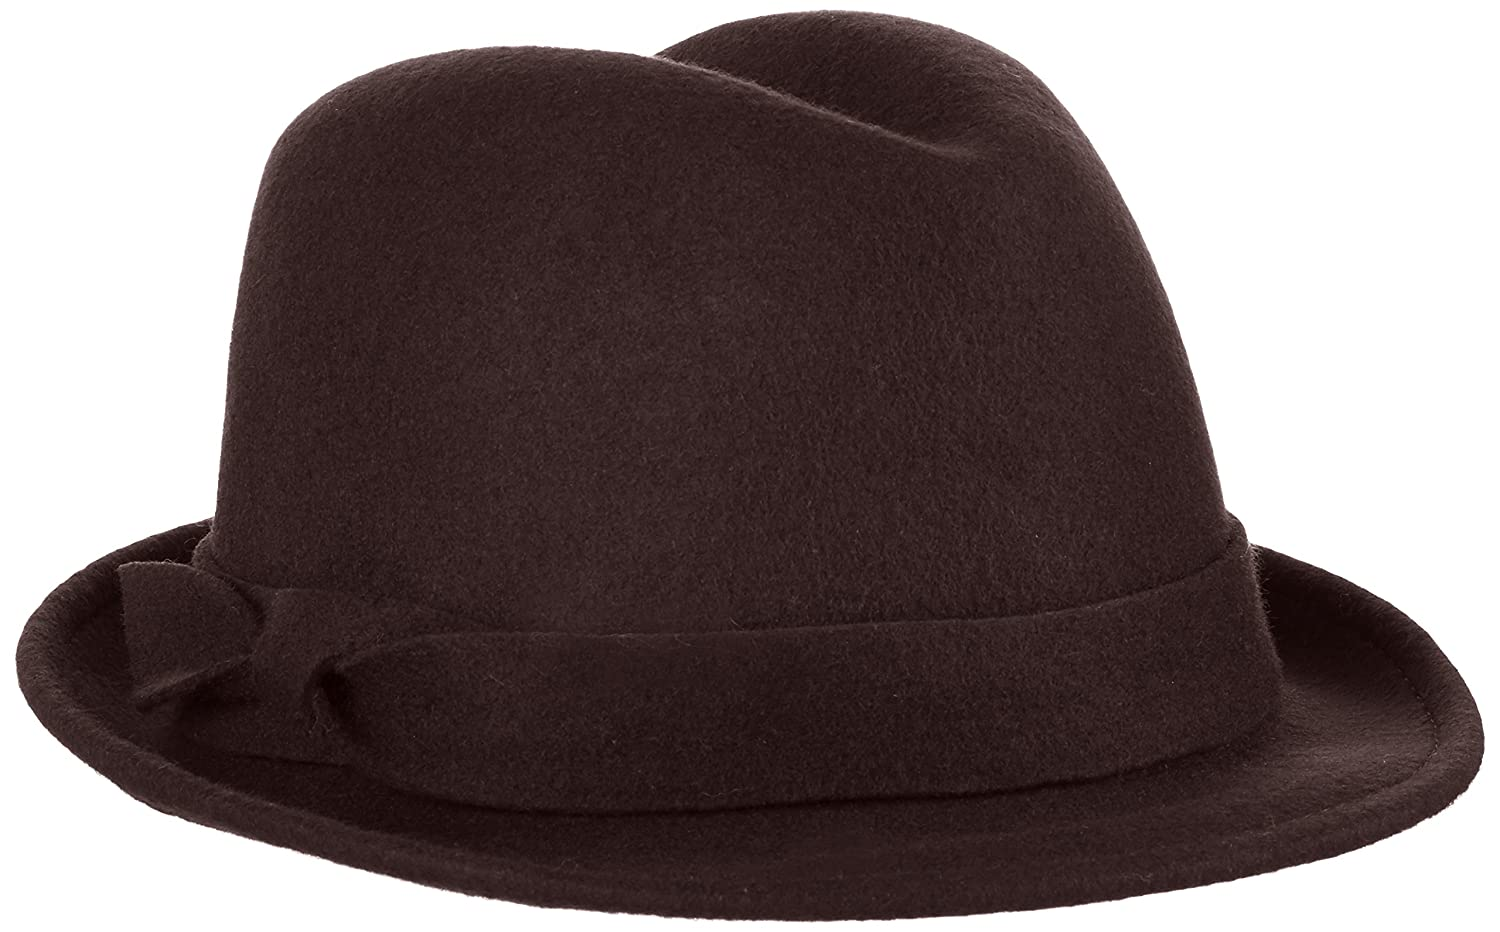 Women's Vintage Hats | Old Fashioned Hats | Retro Hats Mount Hood Womens Manchester Trilby Hat £17.95 AT vintagedancer.com